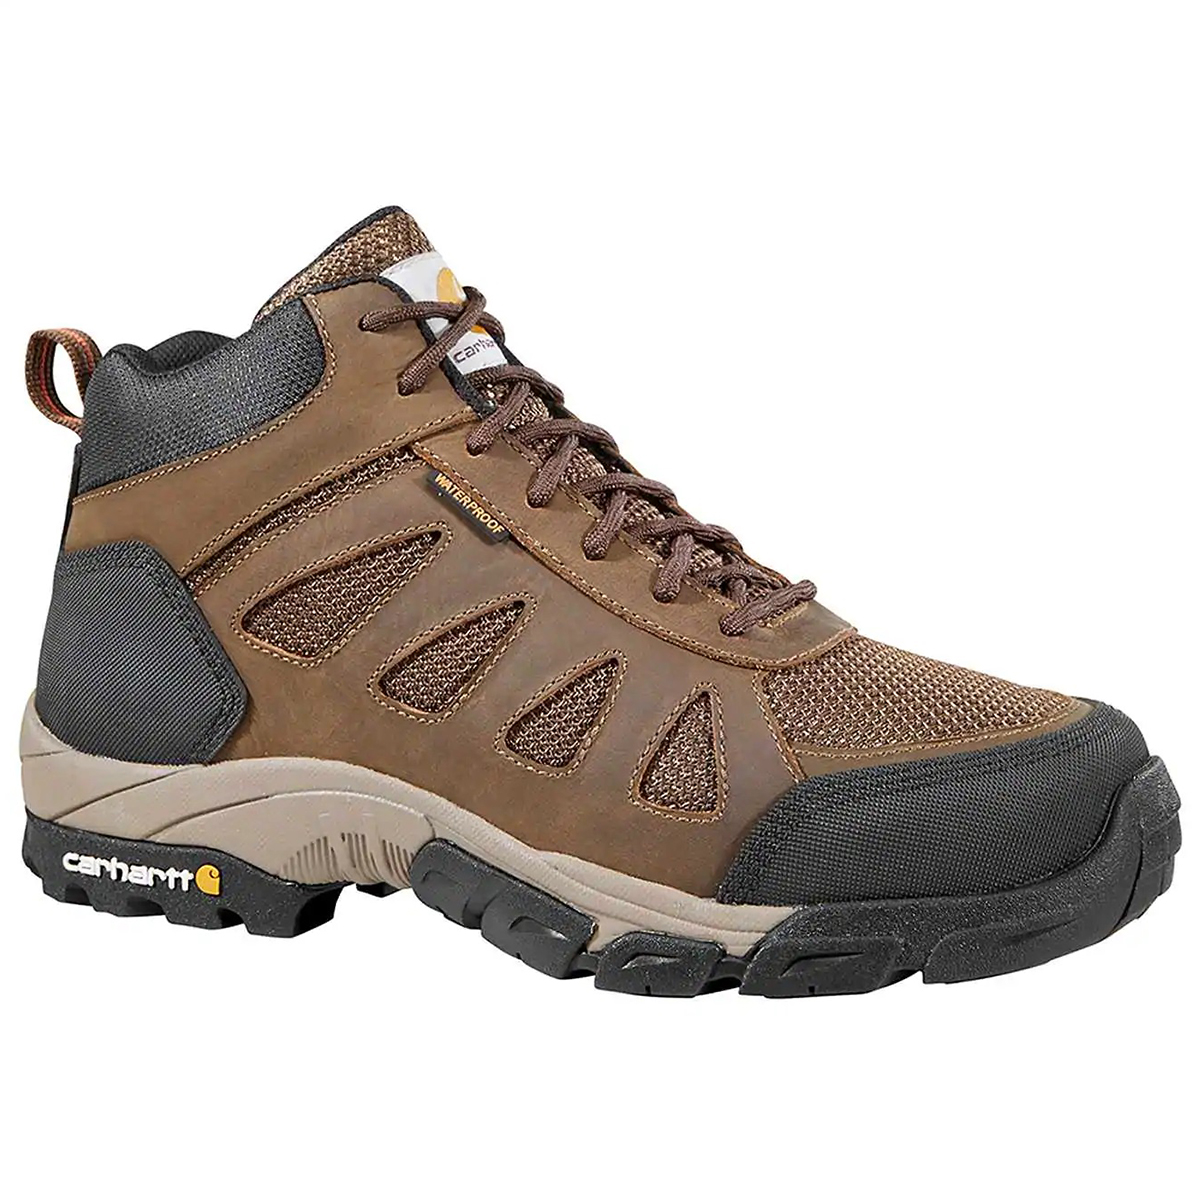 Carhartt Men's Lightweight Waterproof Hiking Work Boot - Brown, 8